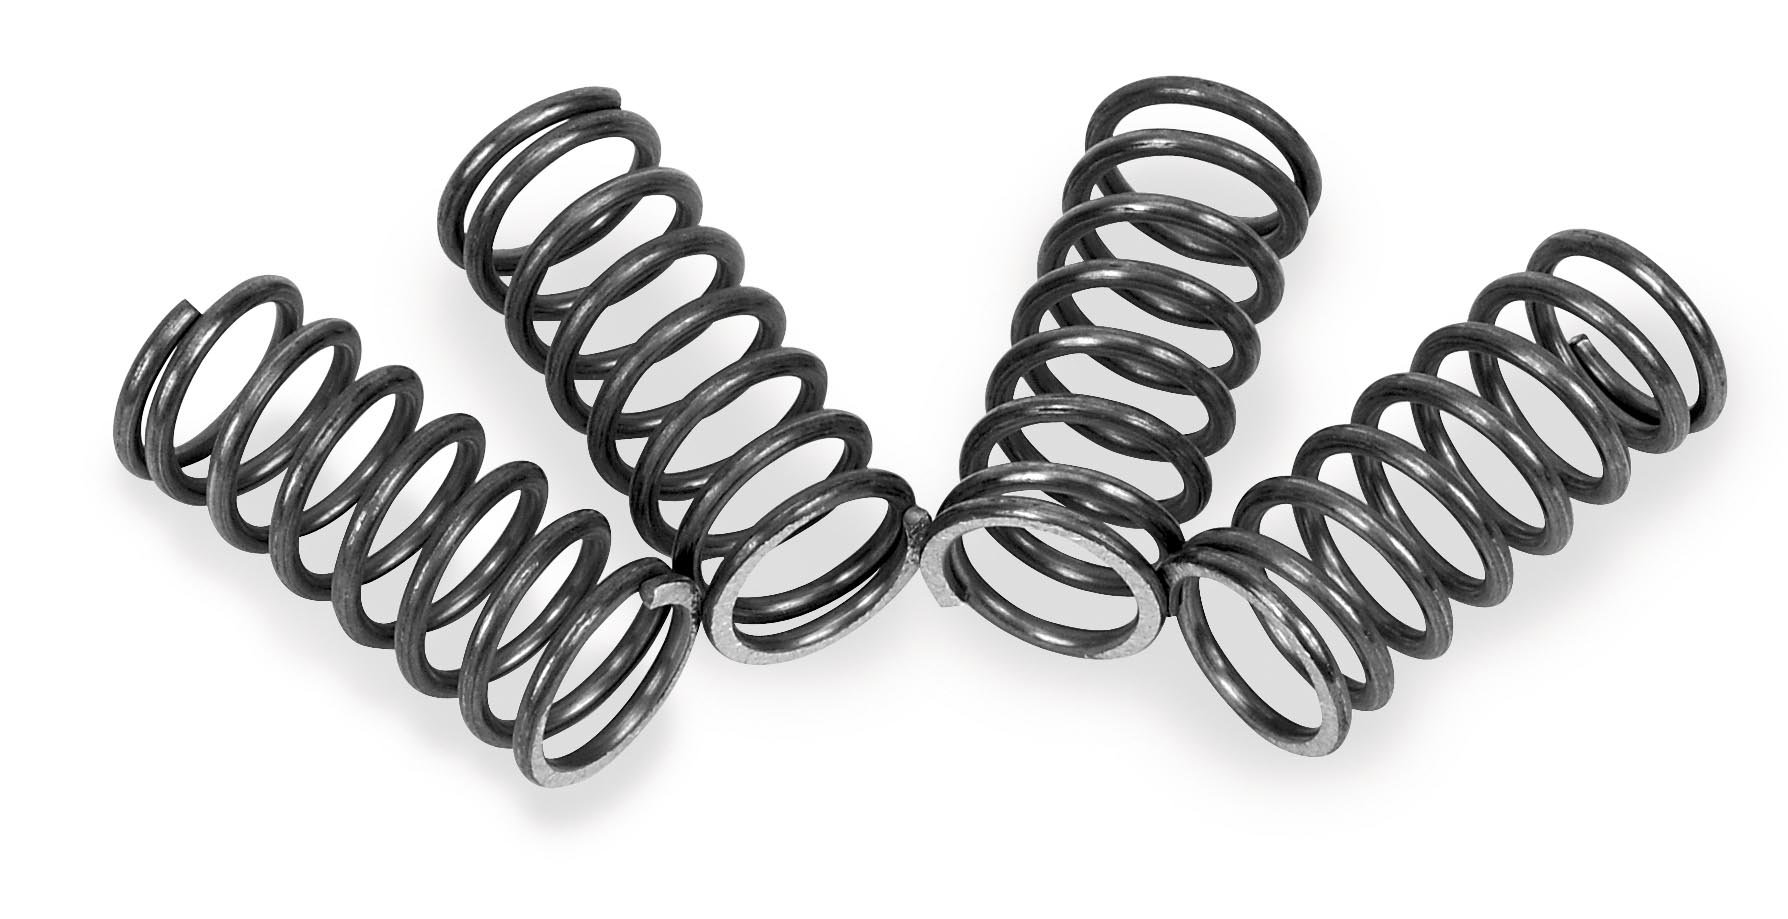 BBR Motorsports Heavy-Duty Clutch Springs 410-KLX-1105